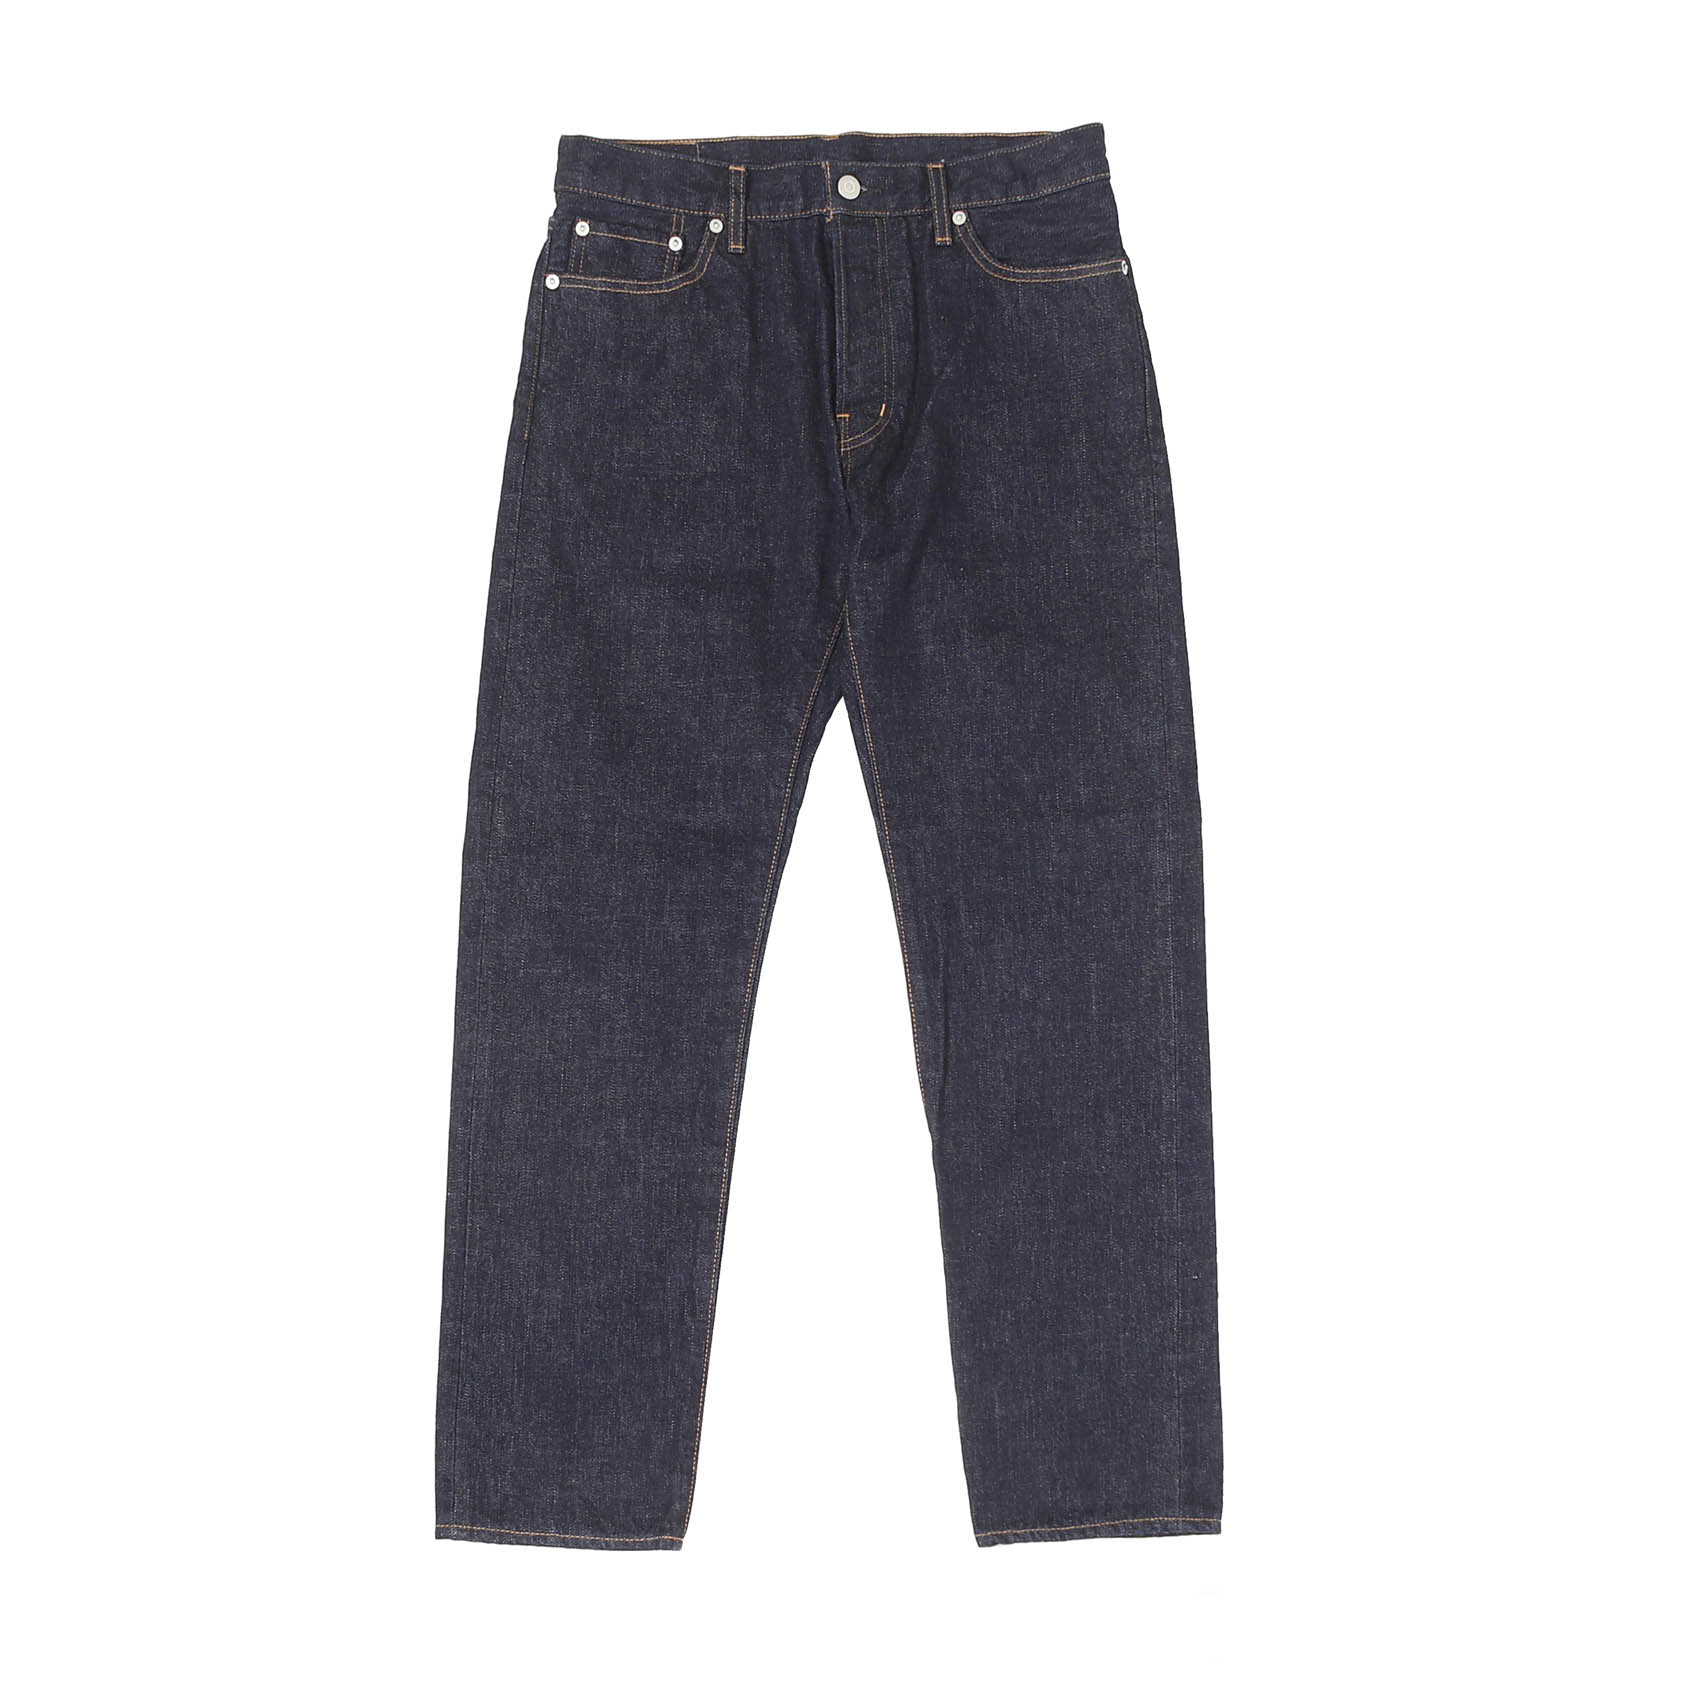 5 POCKET ROLL UP DENIM PANTS - INDIGO OW